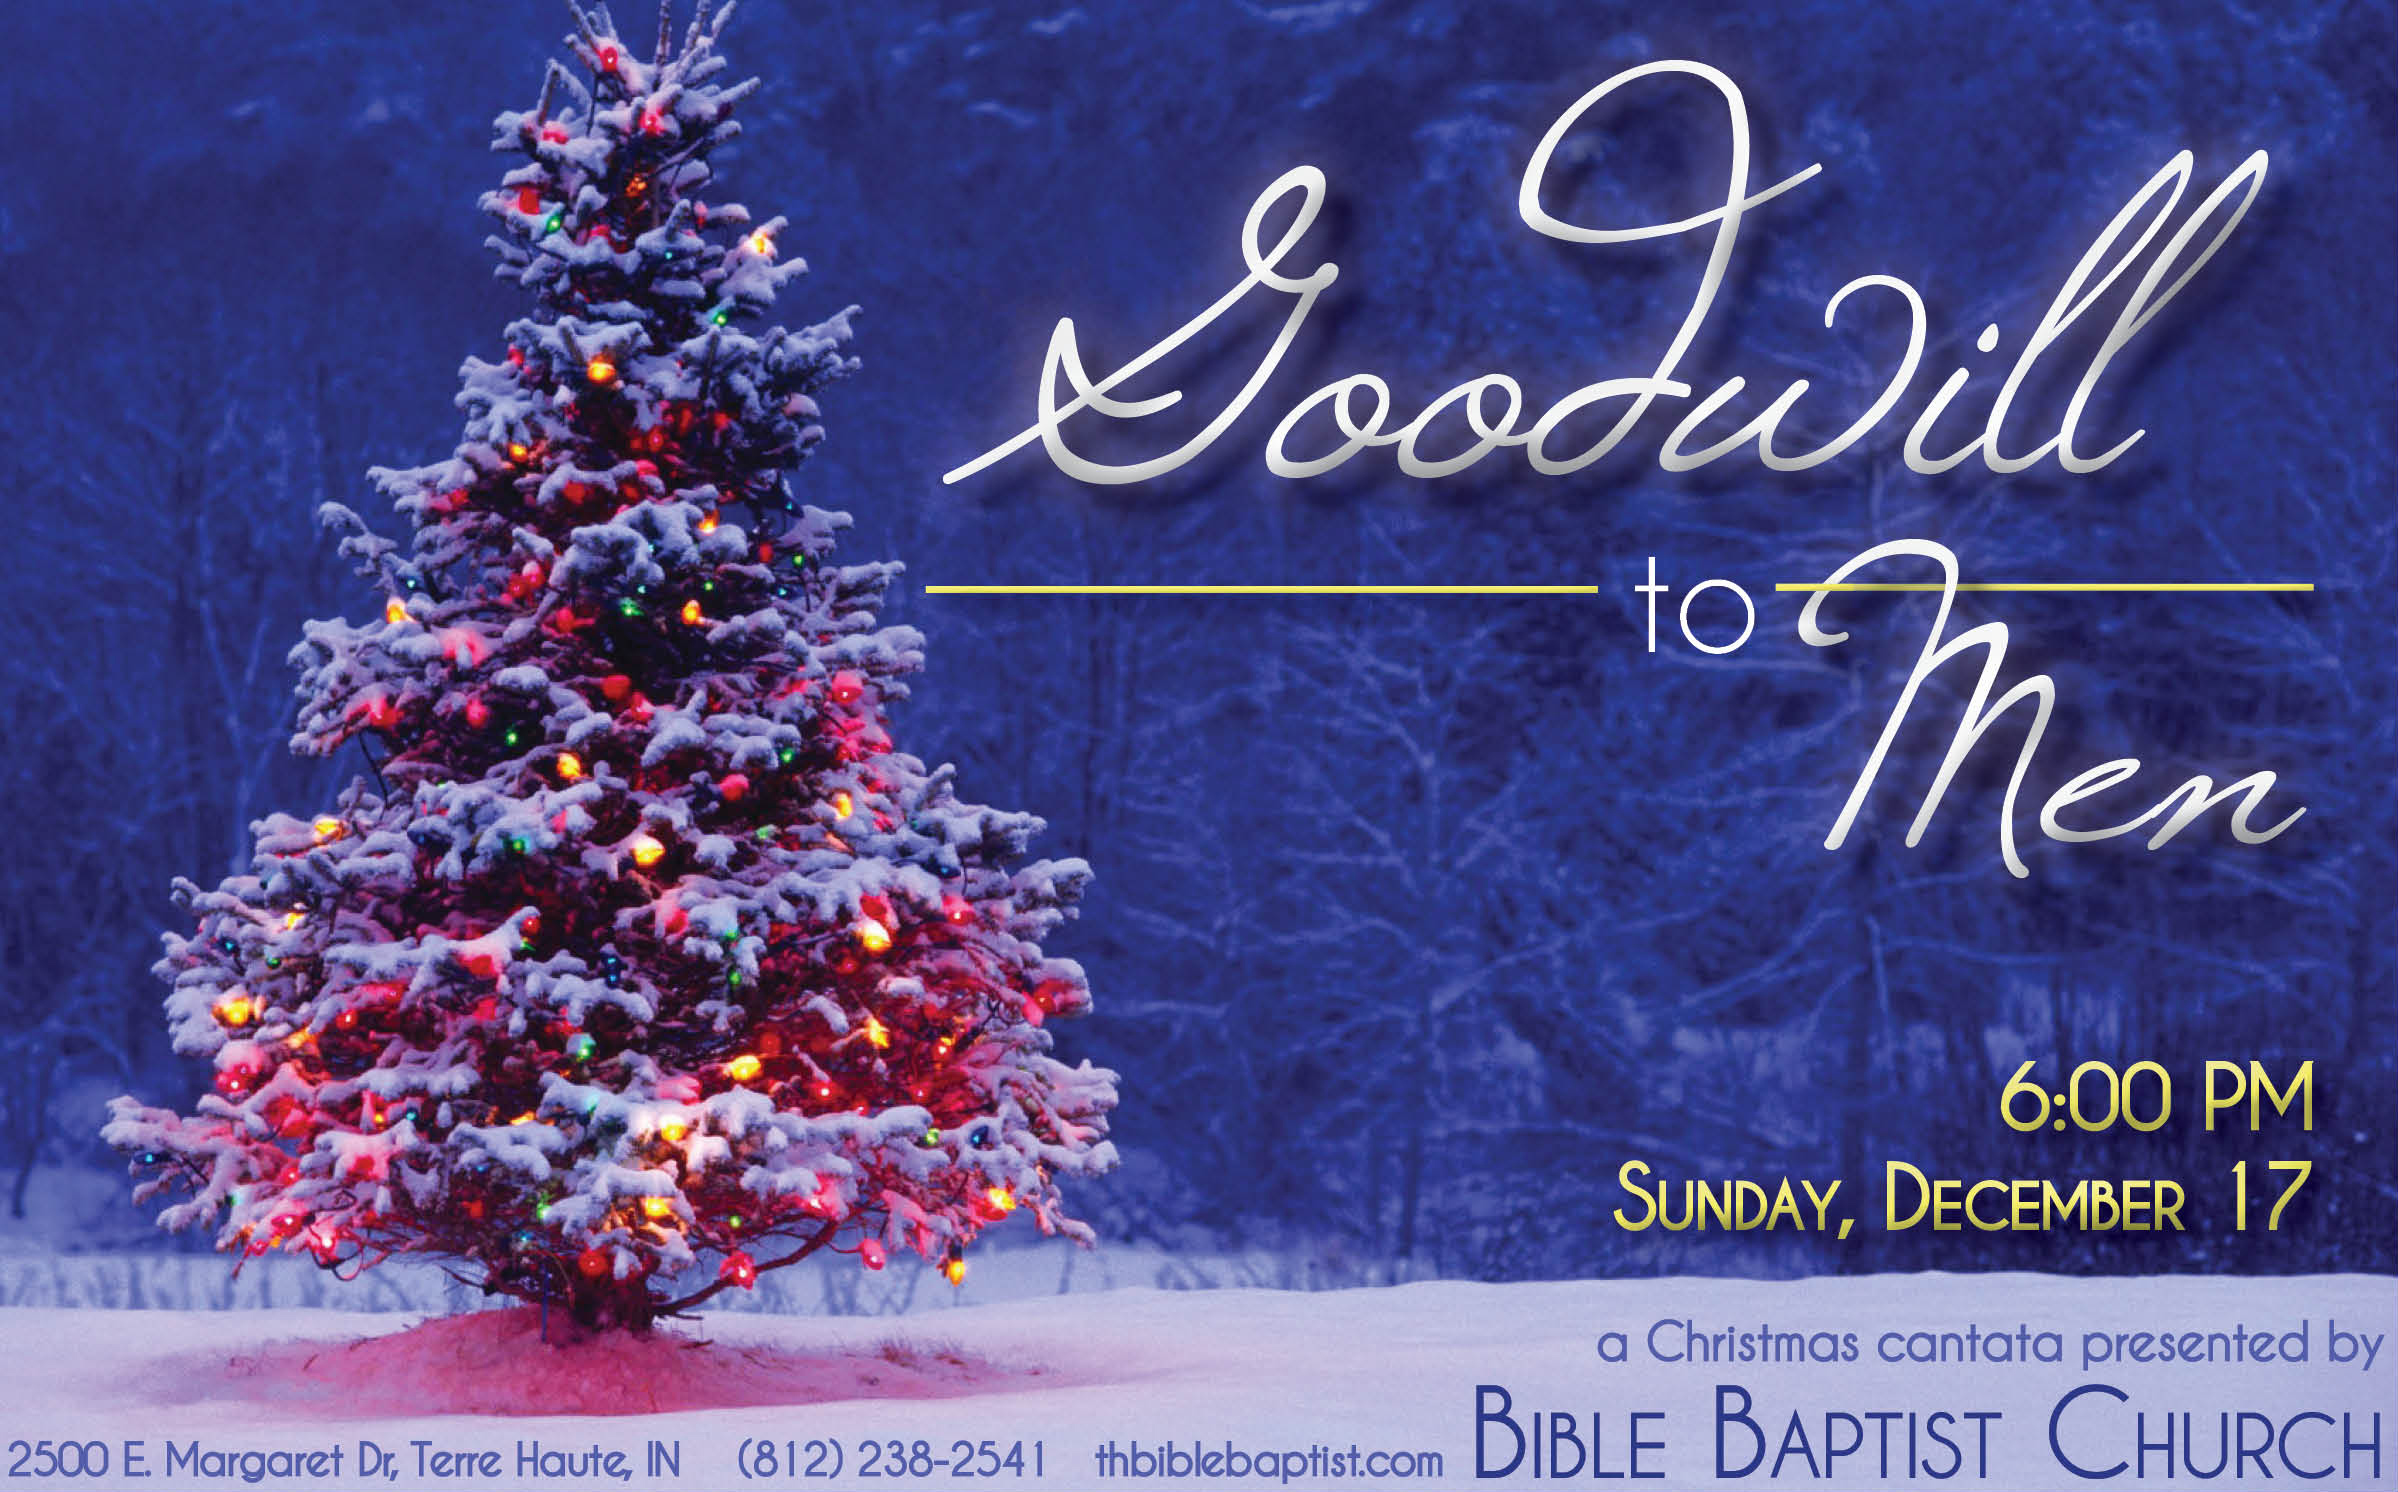 You and your family and friends are invited to join us on Sunday, December 17, at 6:00 PM, as Bible Baptist Church presents the Christmas program entitled ...